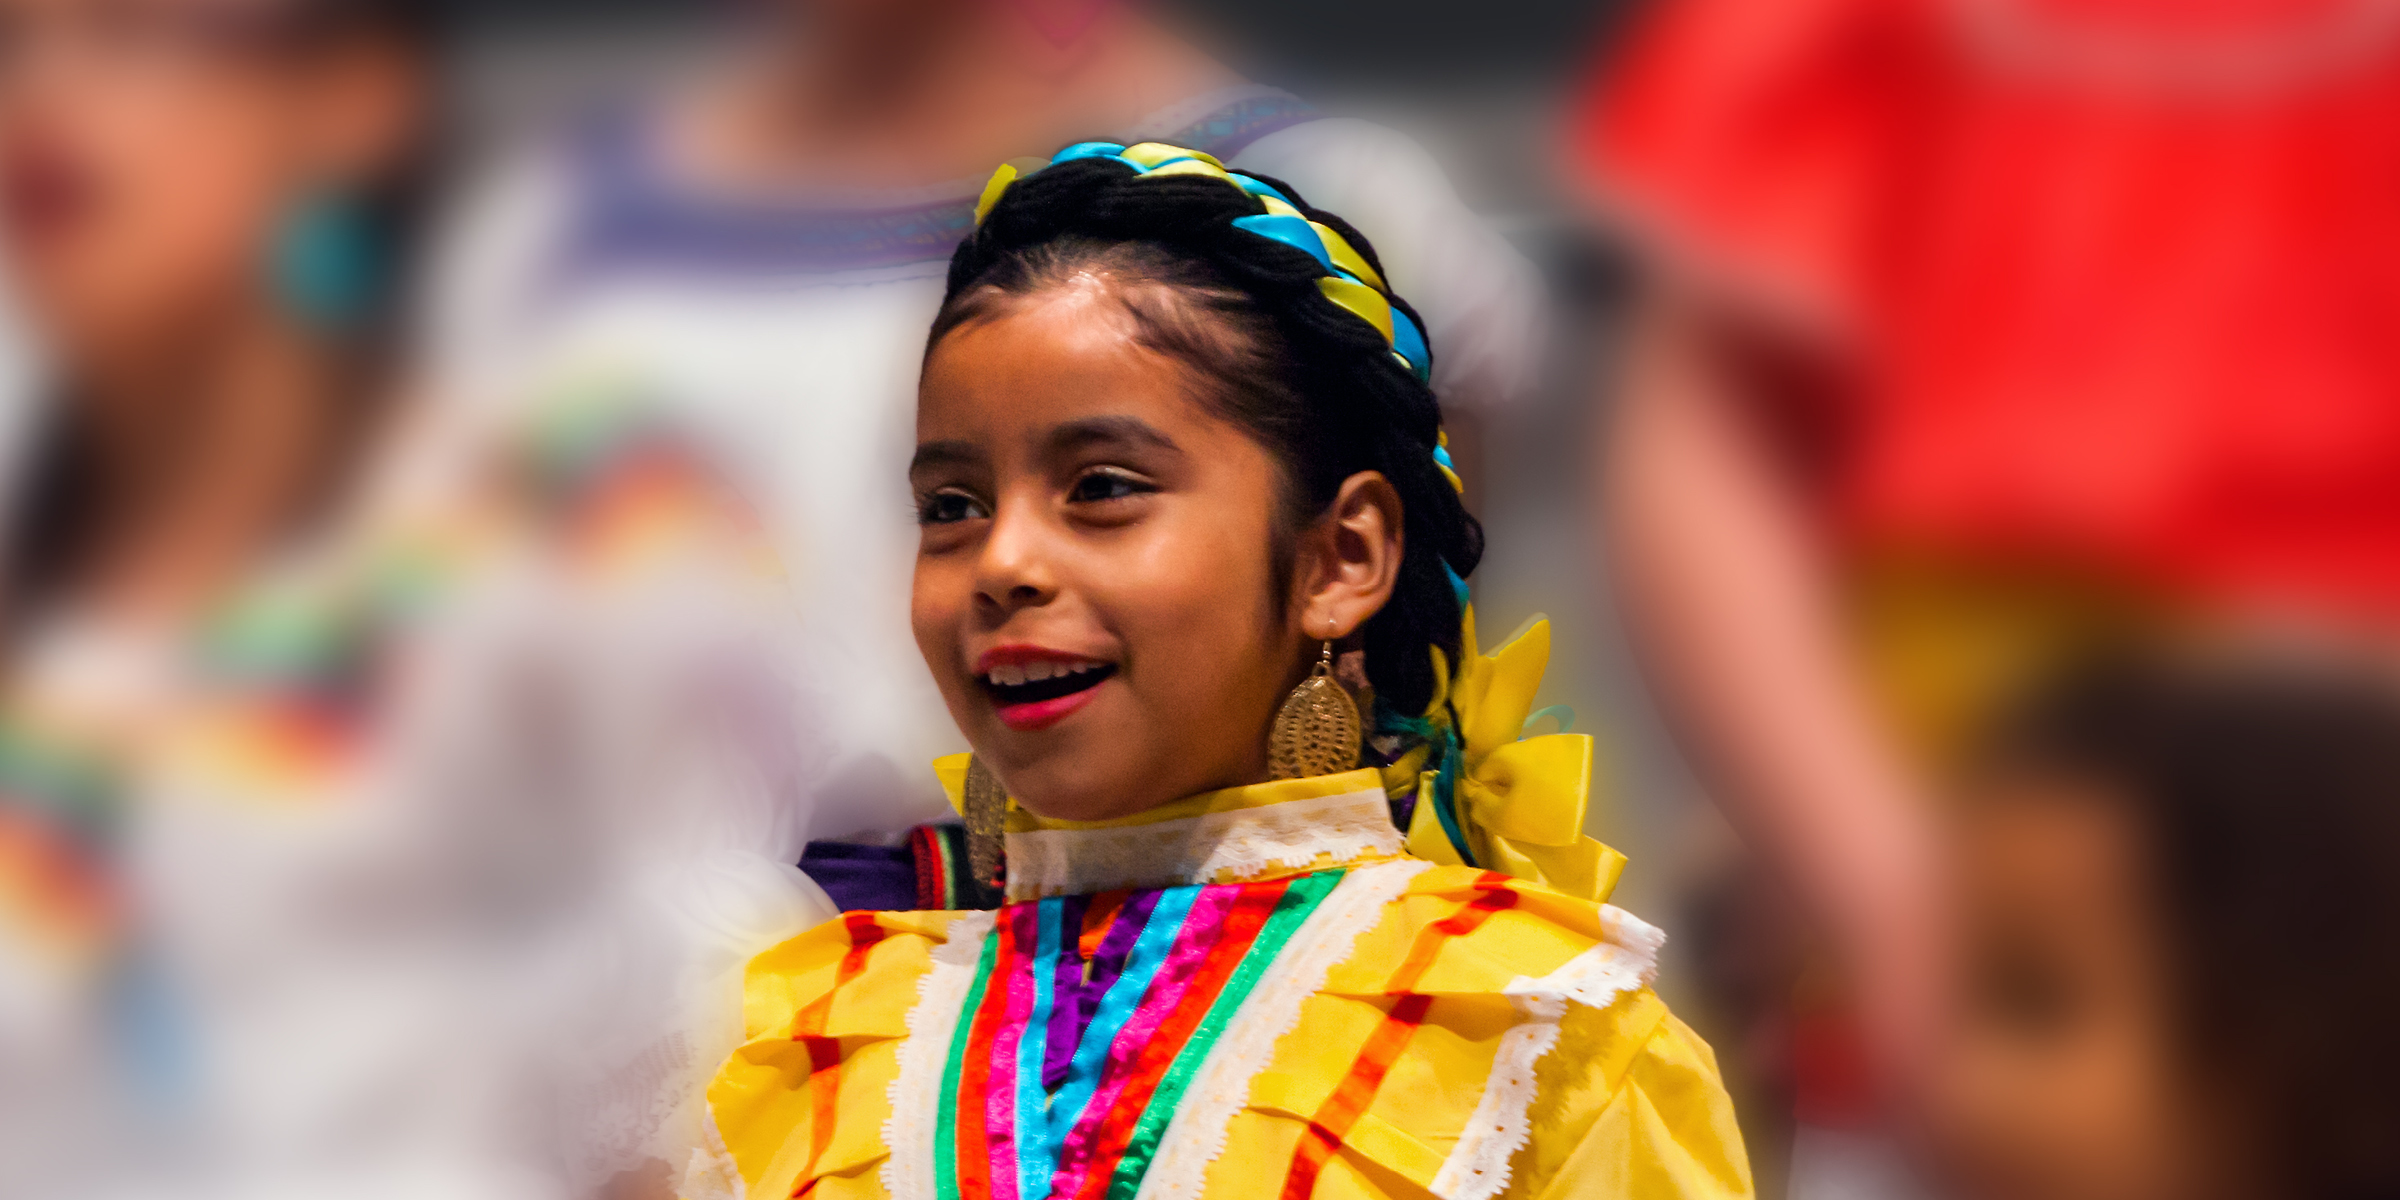 Singing girl wearing Mexican dress